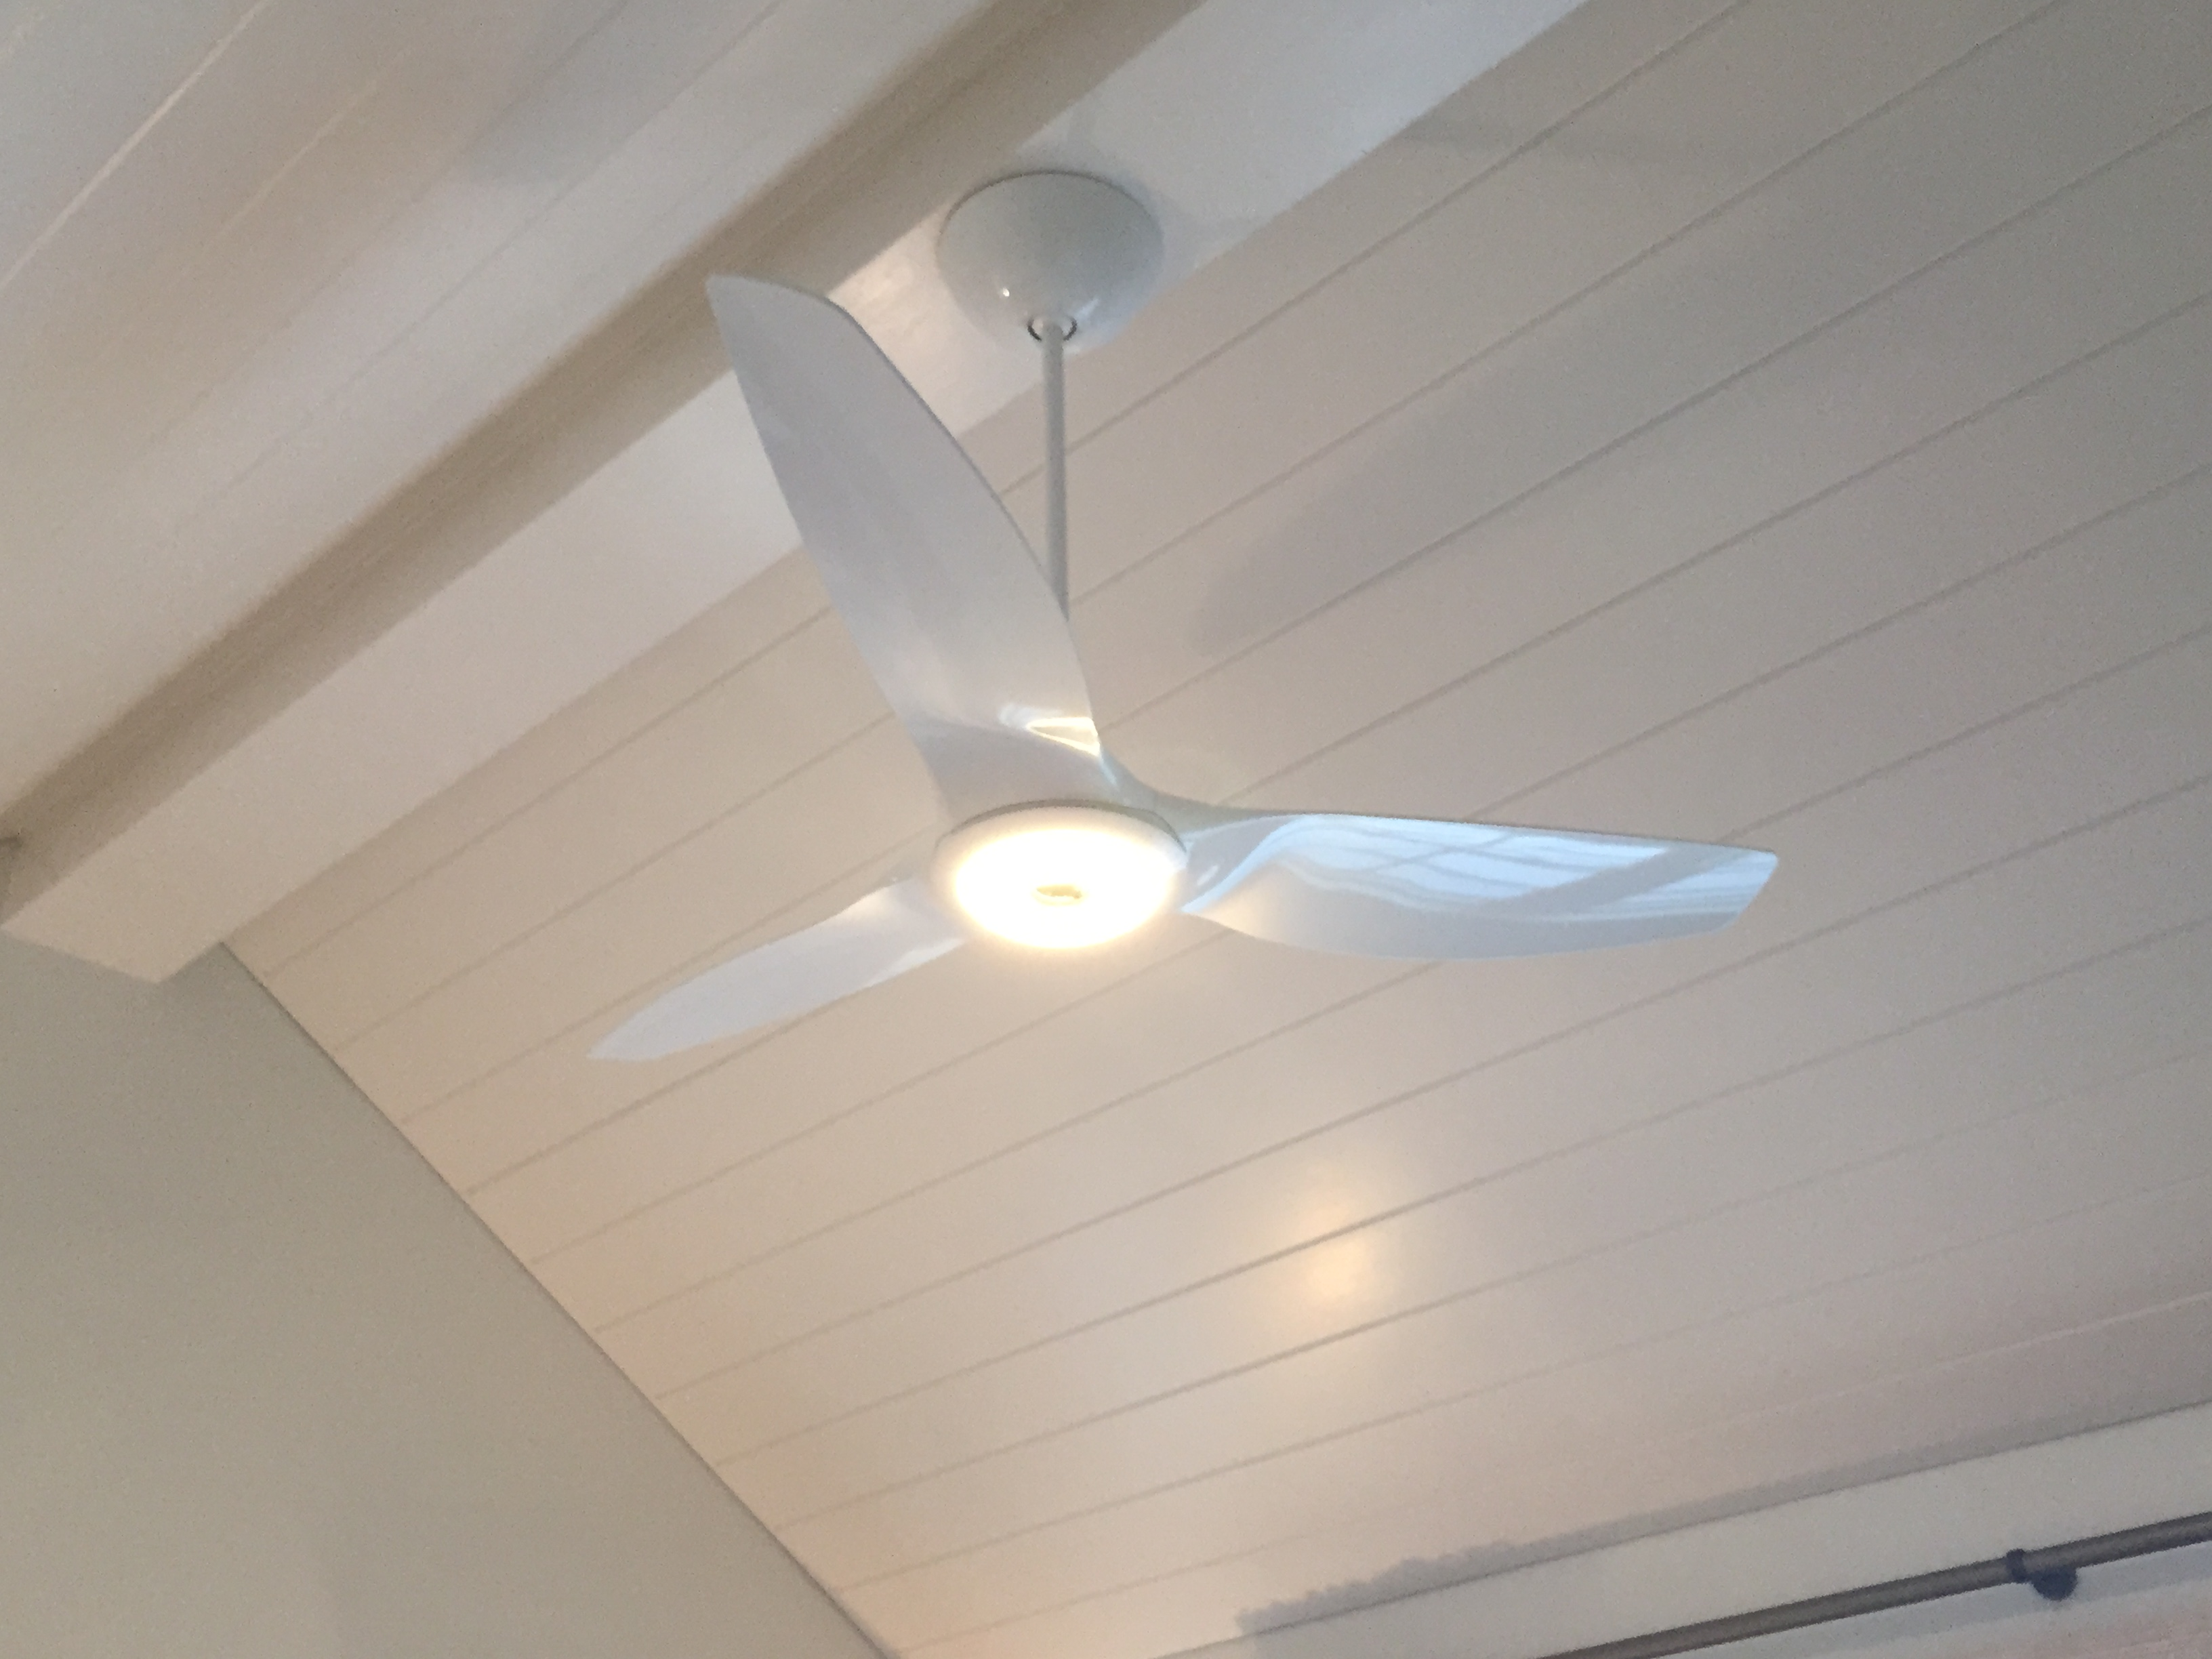 These fans are Energy Star rated. It's important to educate yourself on what's really green, Erle said.